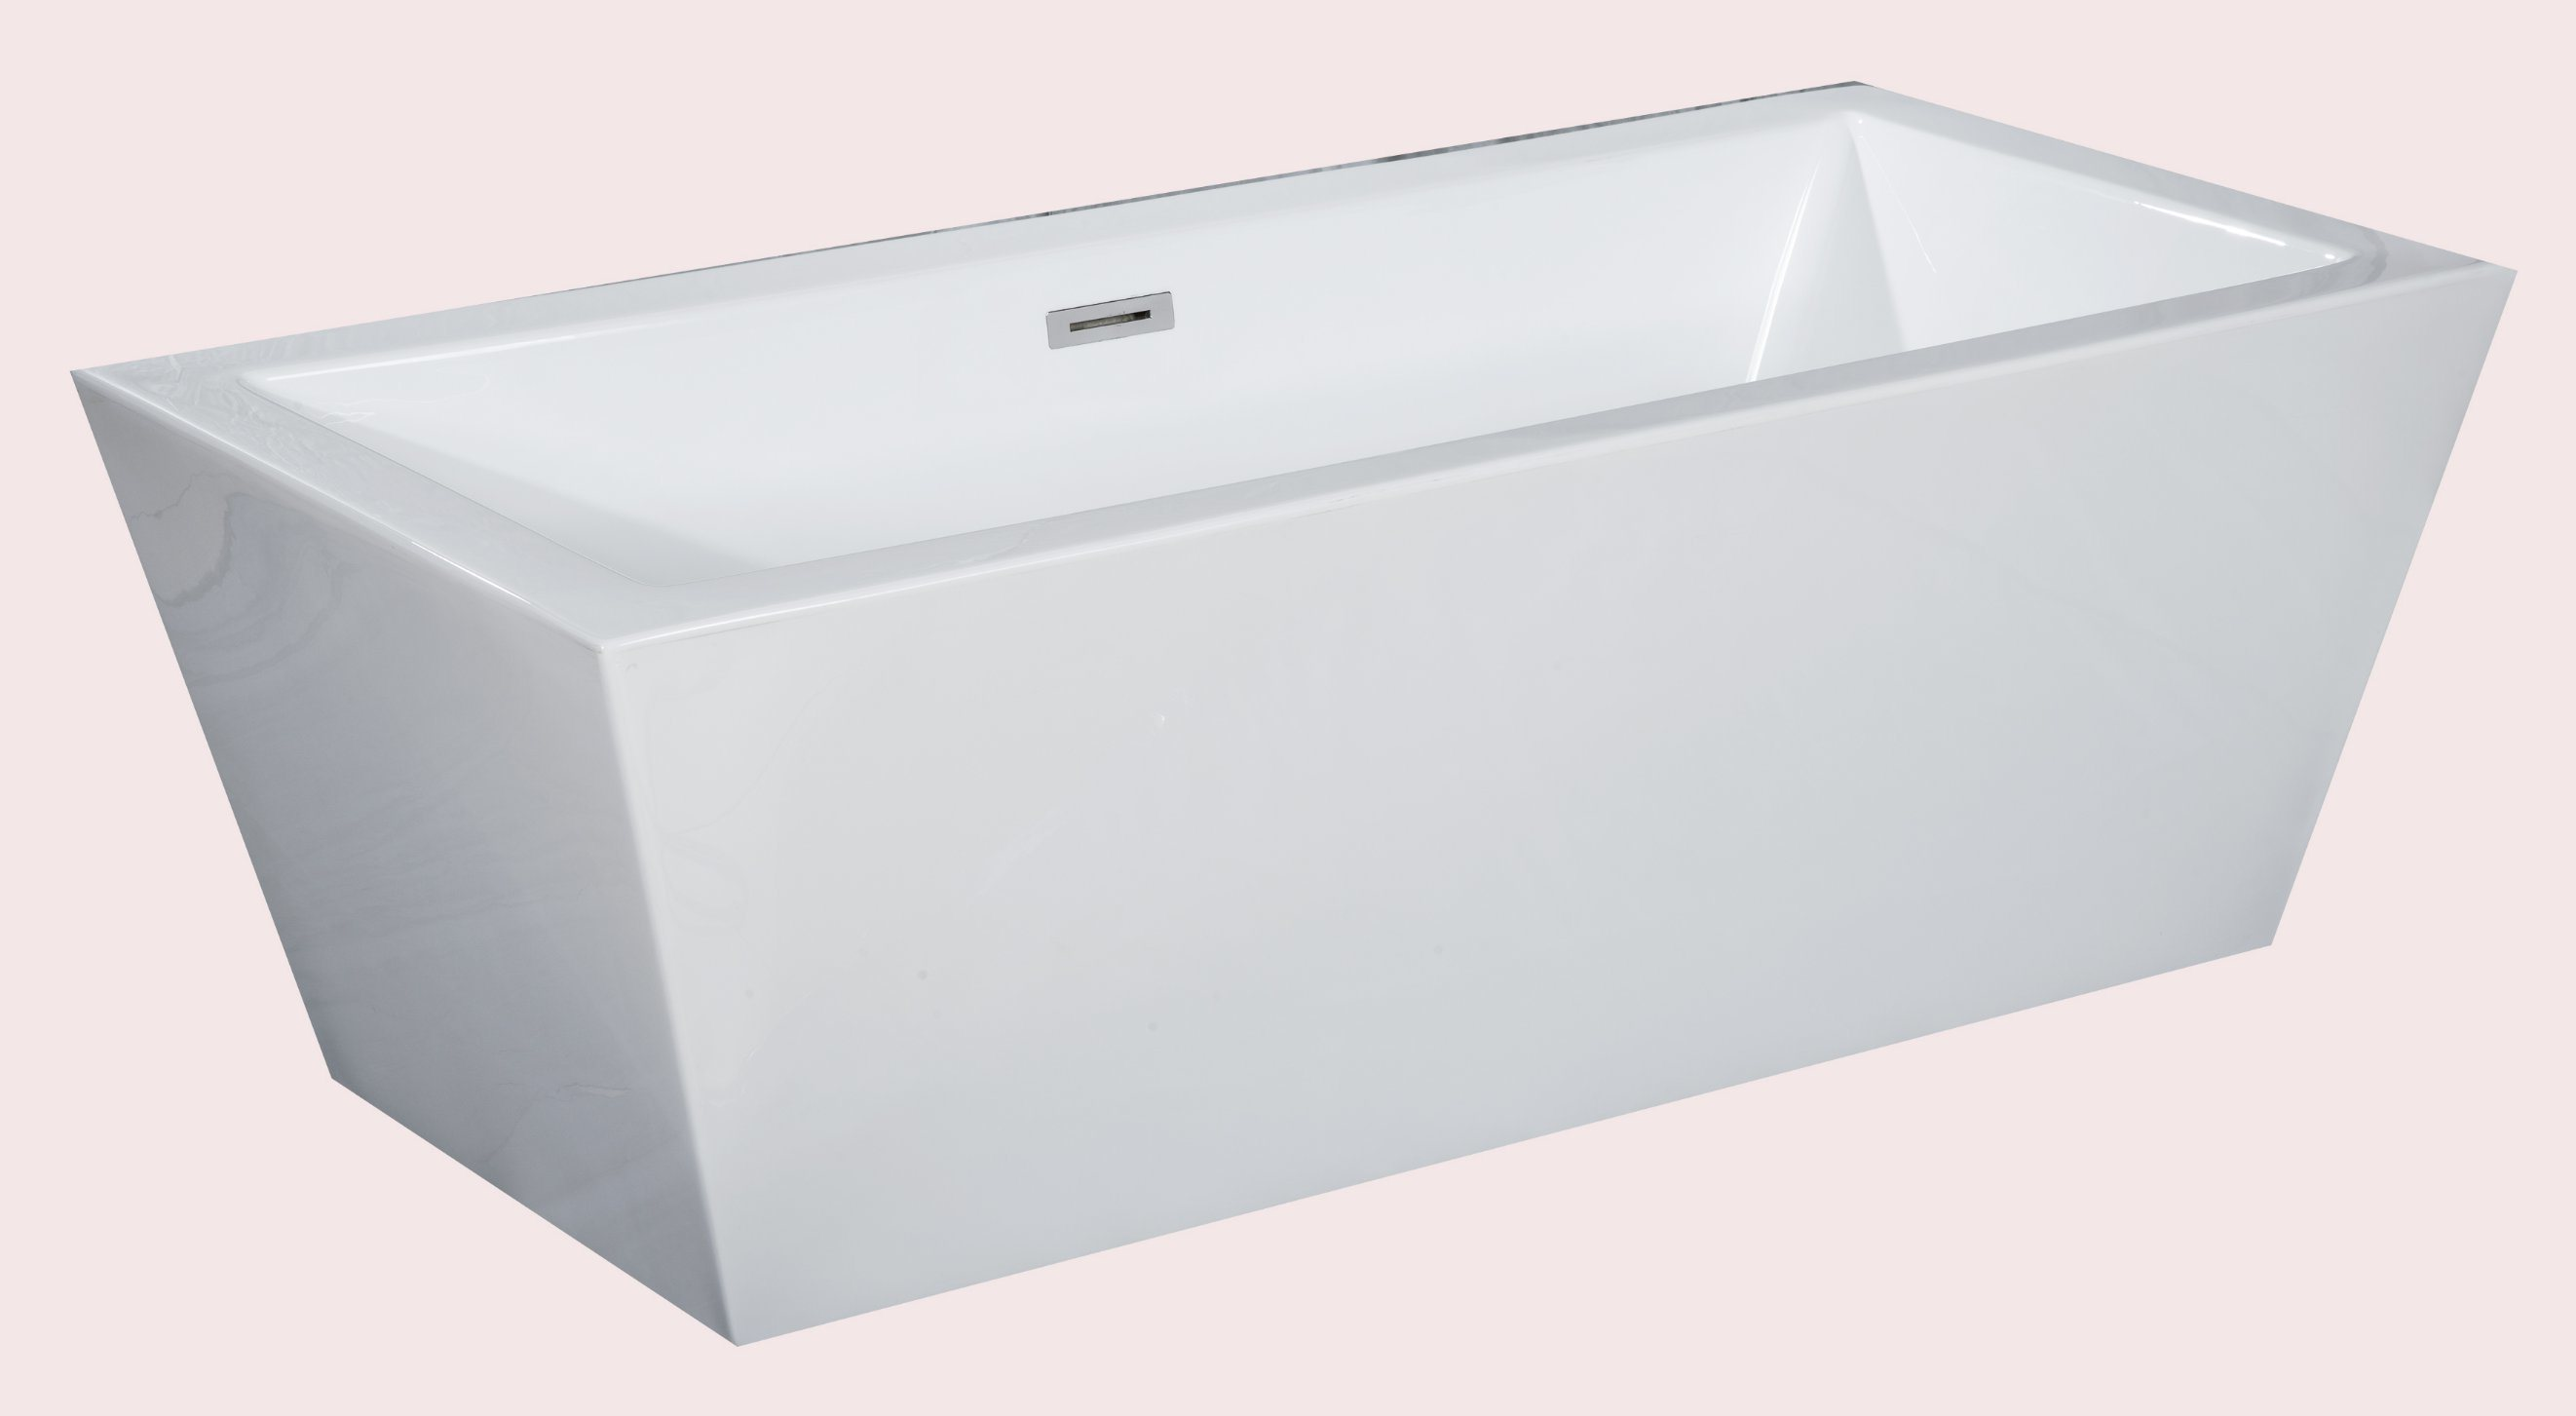 China Classic American Standard Square Soaking Freestanding Tub ...